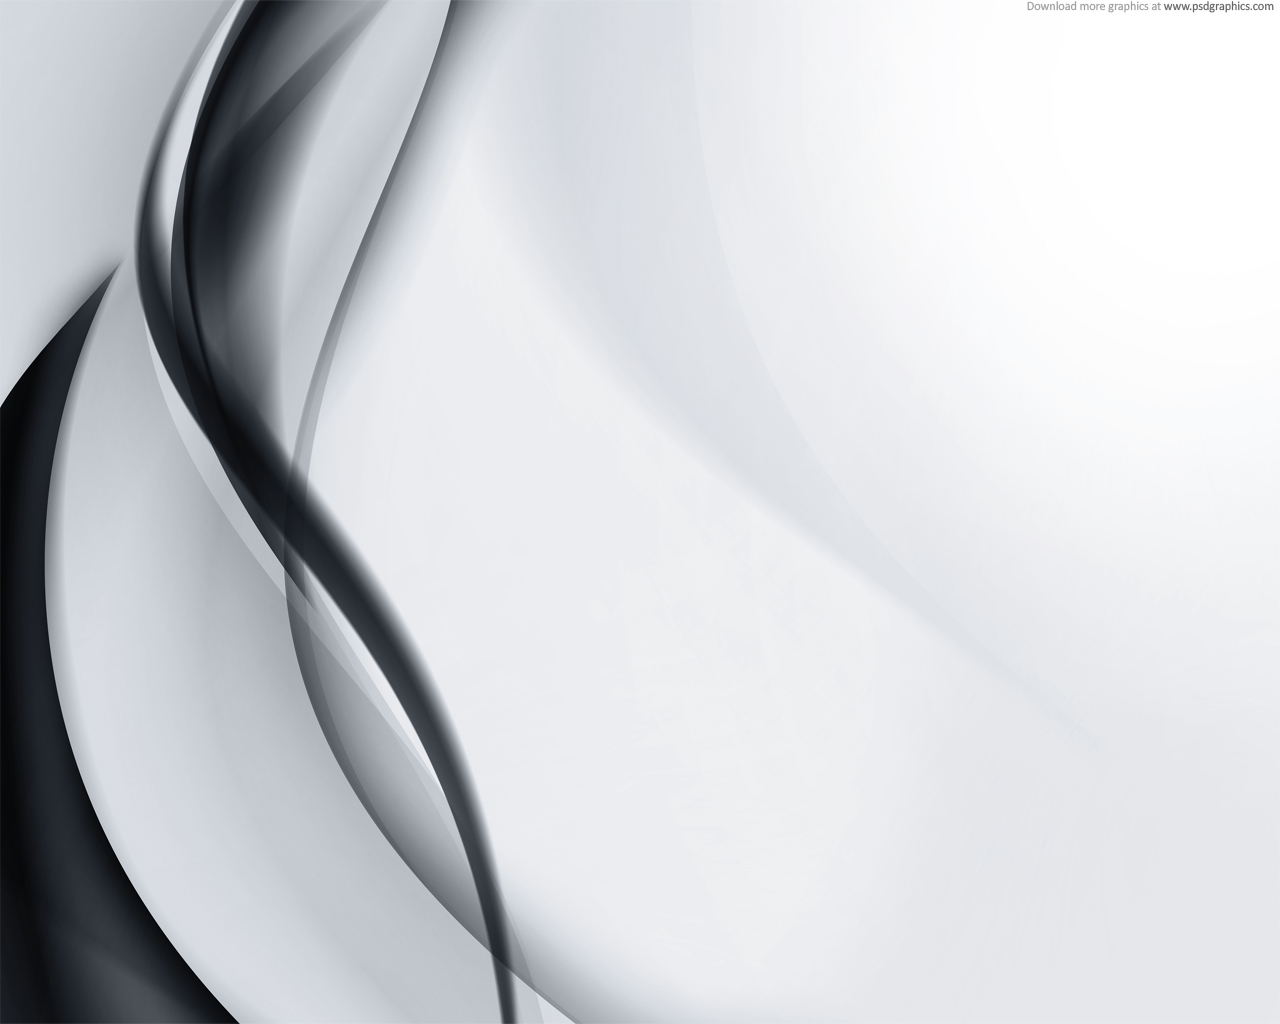 Medium size preview (1280x1024px): black and white abstract background